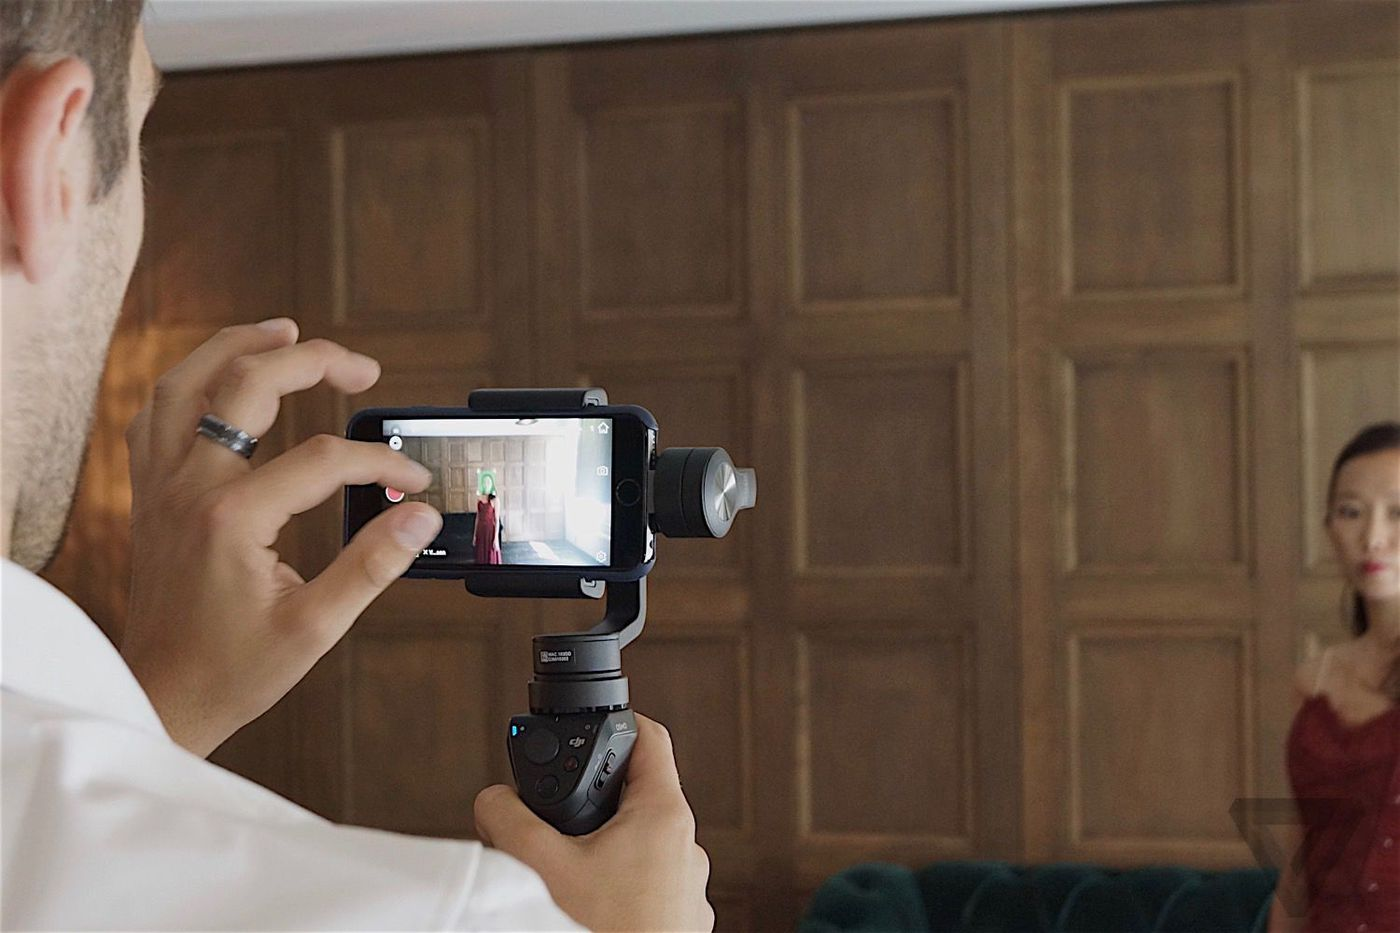 How to shoot great video with your smartphone - The Verge